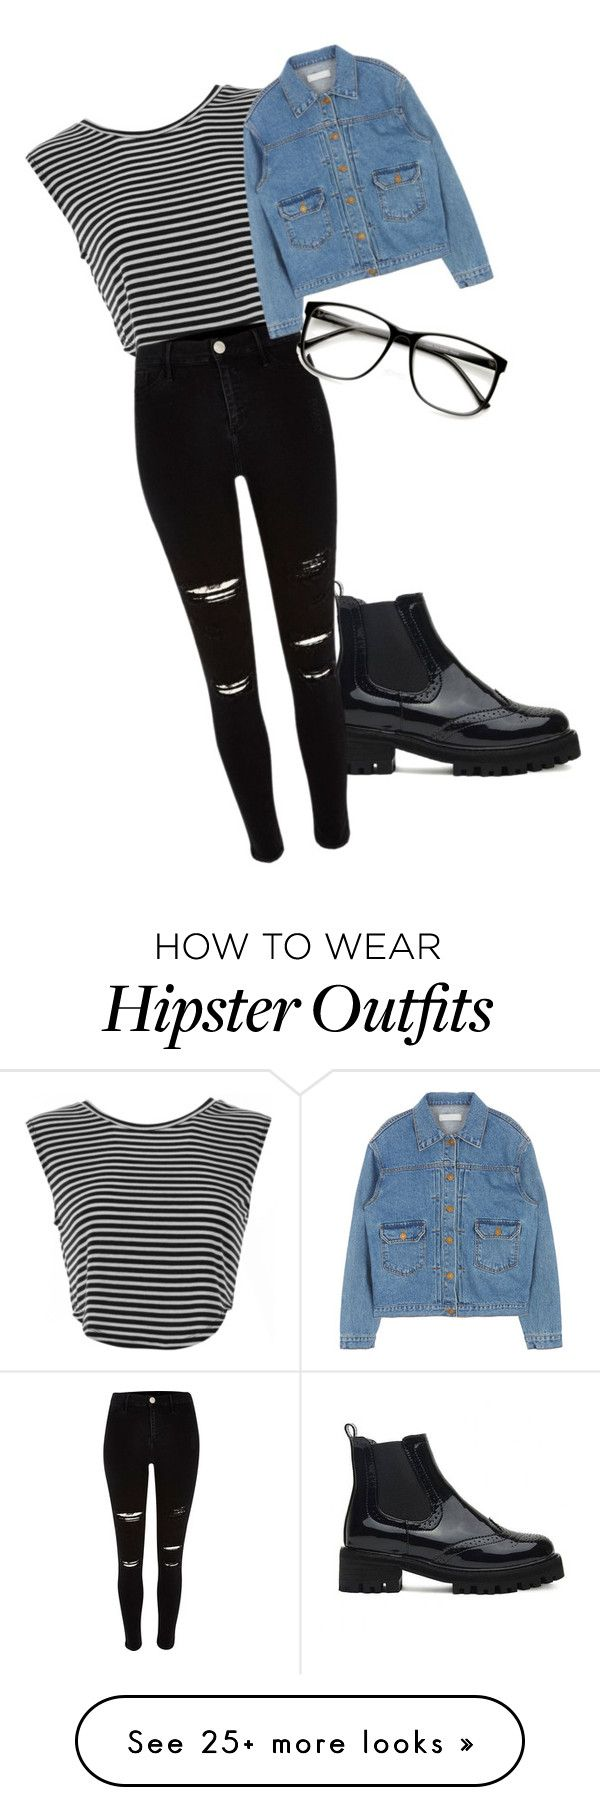 """""""Untitled #1"""" by snobbatman on Polyvore featuring мода, River Island, women's clothing, women, female, woman, misses и juniors"""